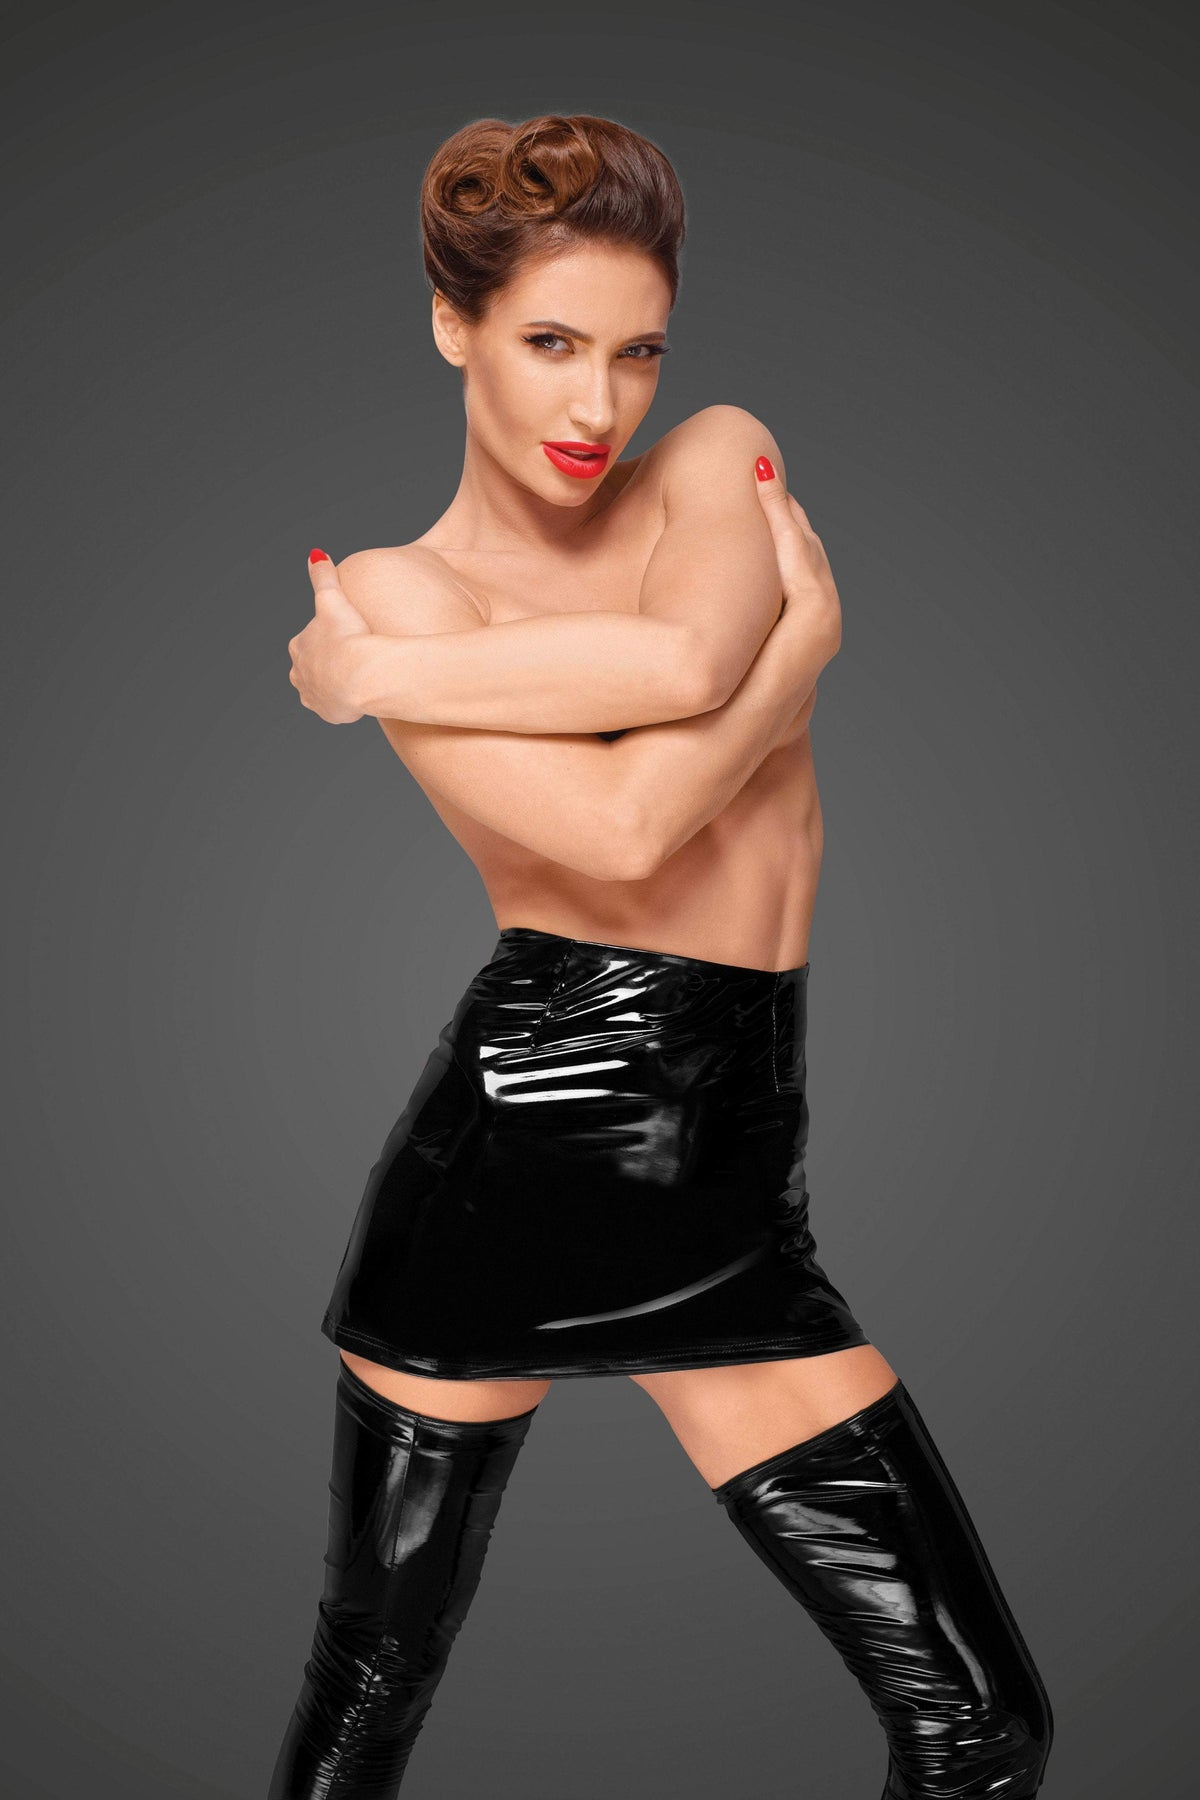 Noir Handmade Womens PVC Clothing UK 8 / Black F189 Black PVC Mini Skirt